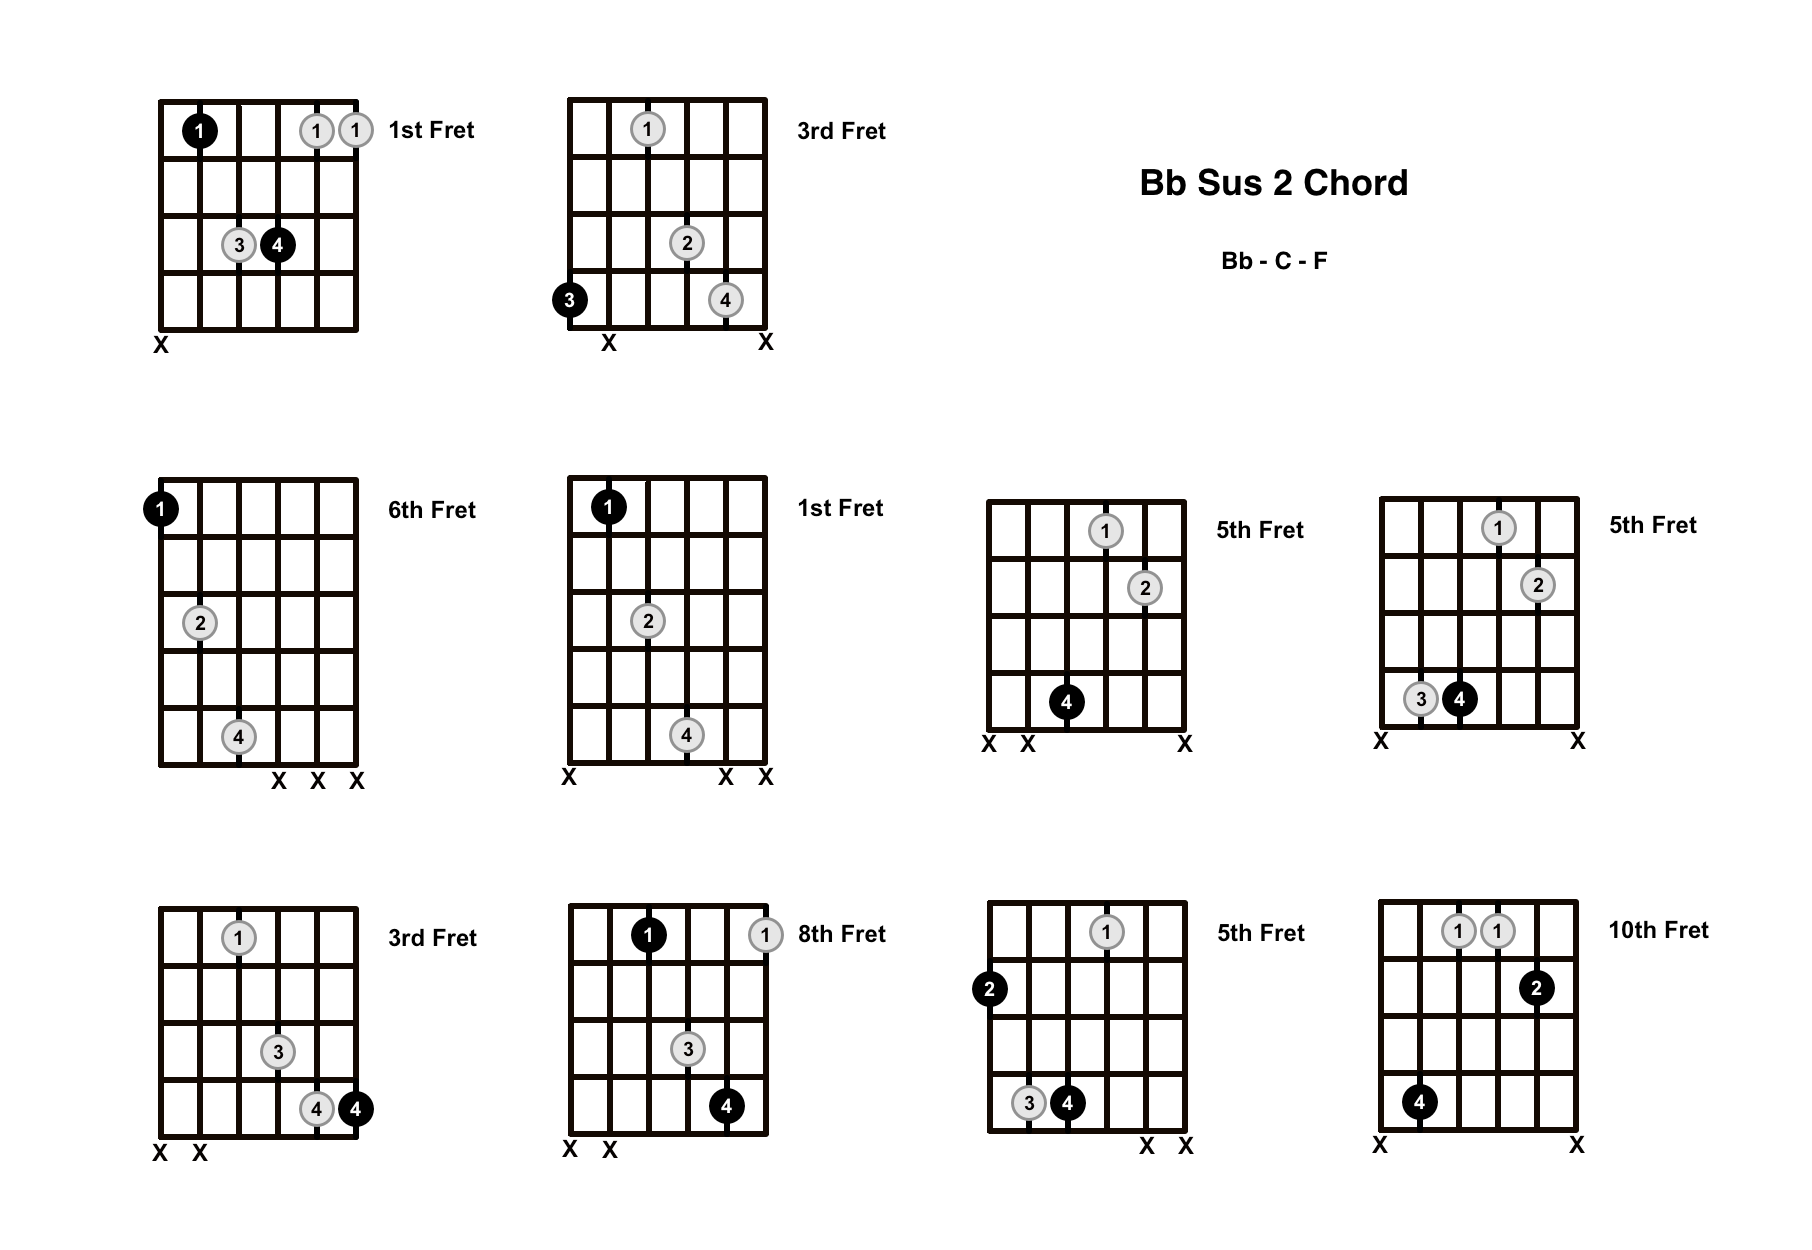 Bb Sus 2 Chord On The Guitar (B Flat Suspended 2) – Diagrams, Finger Positions and Theory